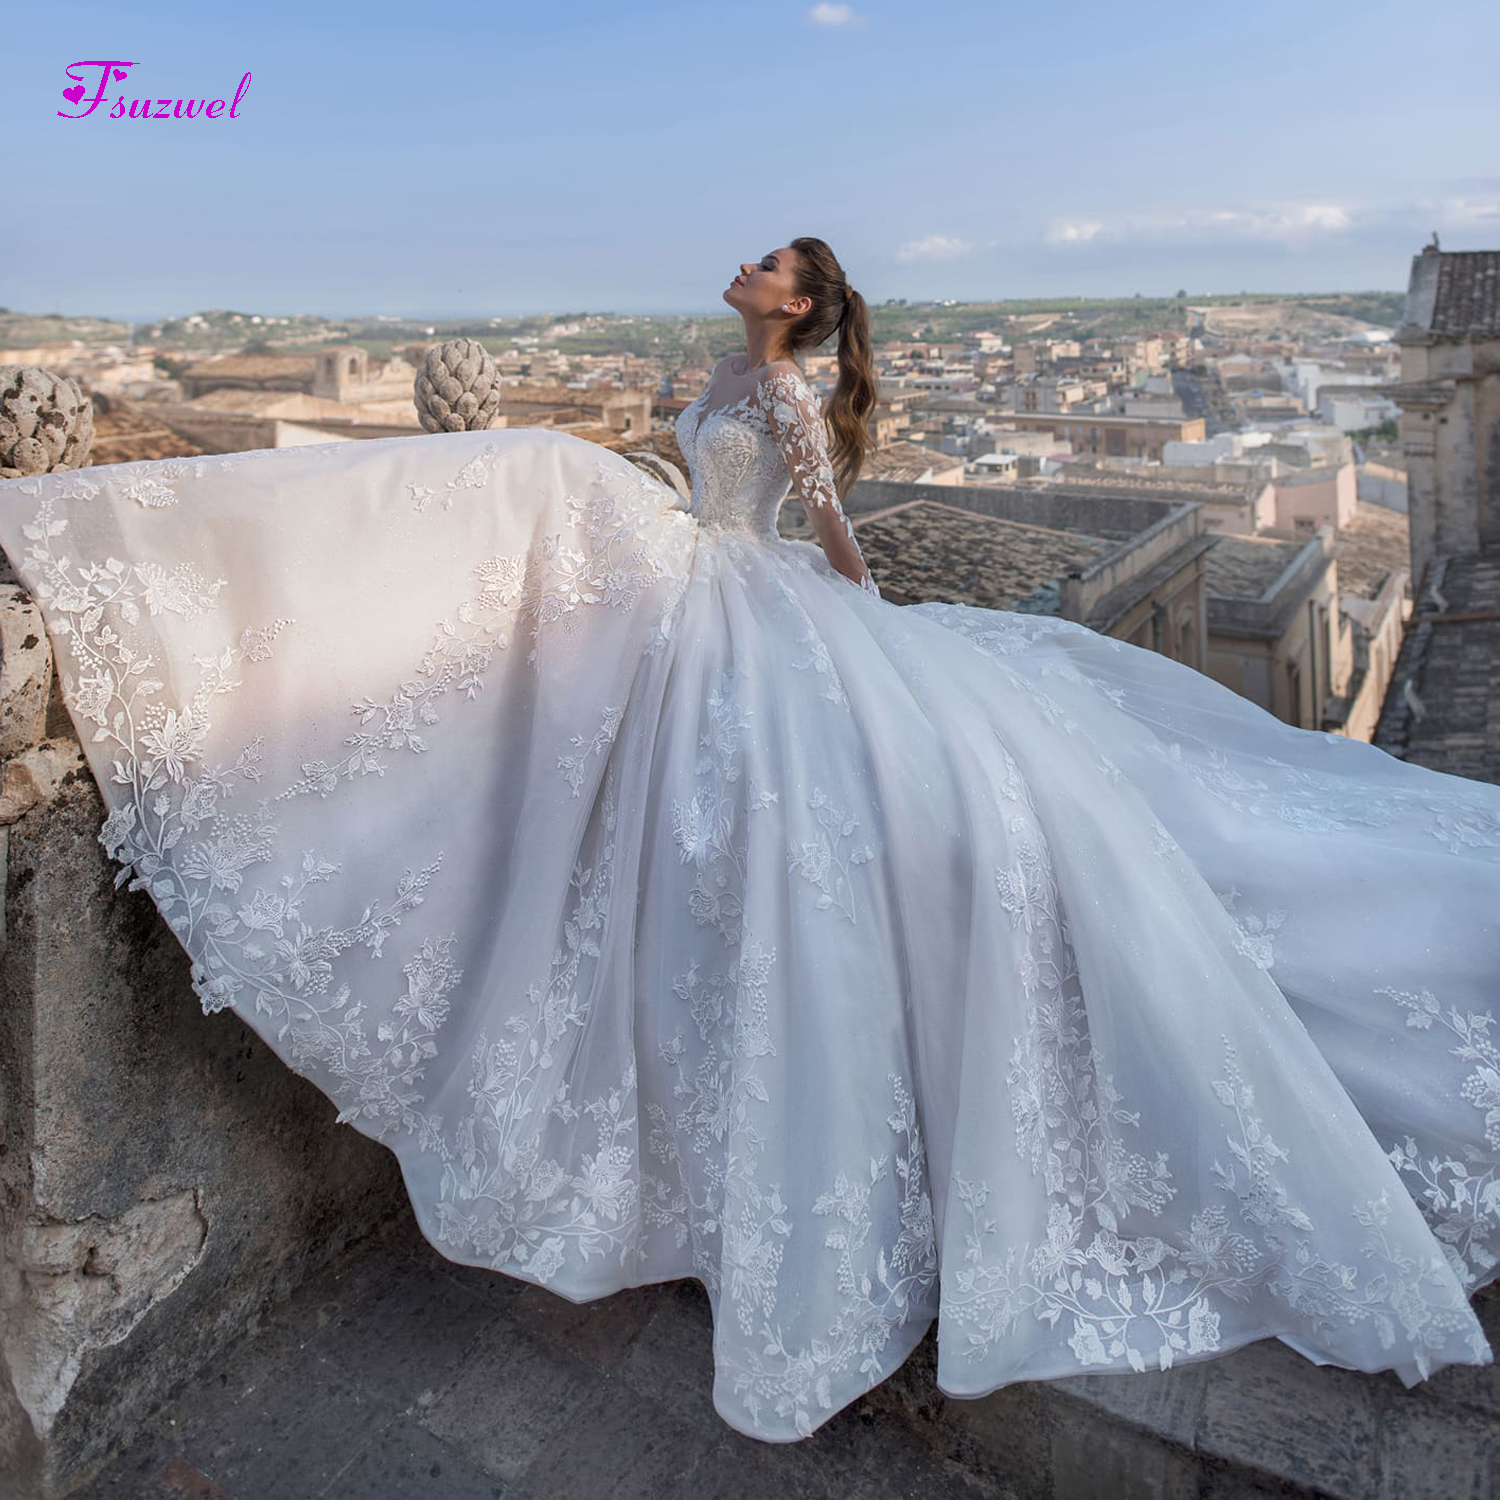 Fsuzwel New Luxury Appliques Court Train A-Line Wedding Dresses 2019 Fashion Scoop Neck Lace Up Princess Bridal Gowns Plus Size